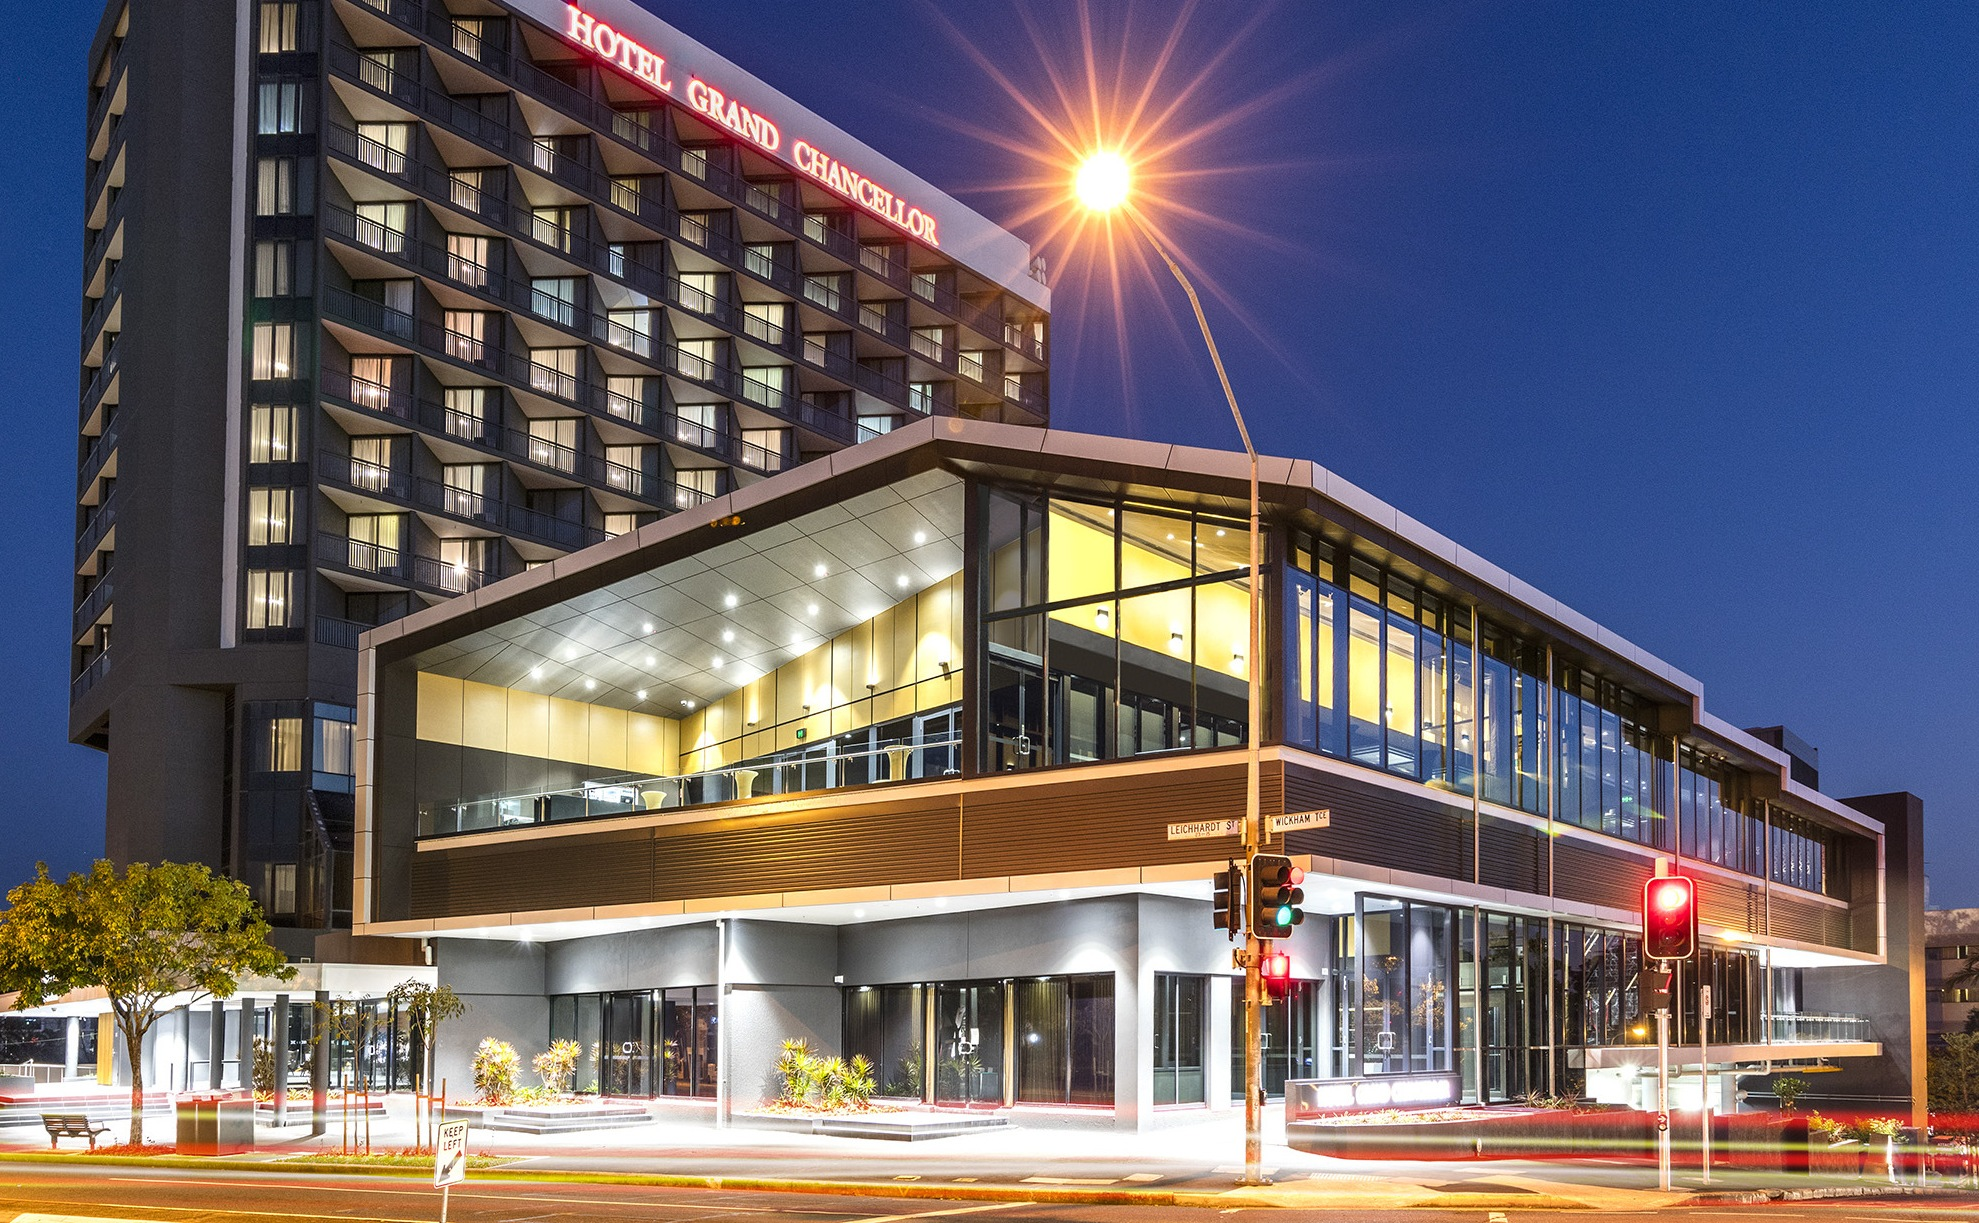 Hotel-Grand-Chancellor-Brisbane